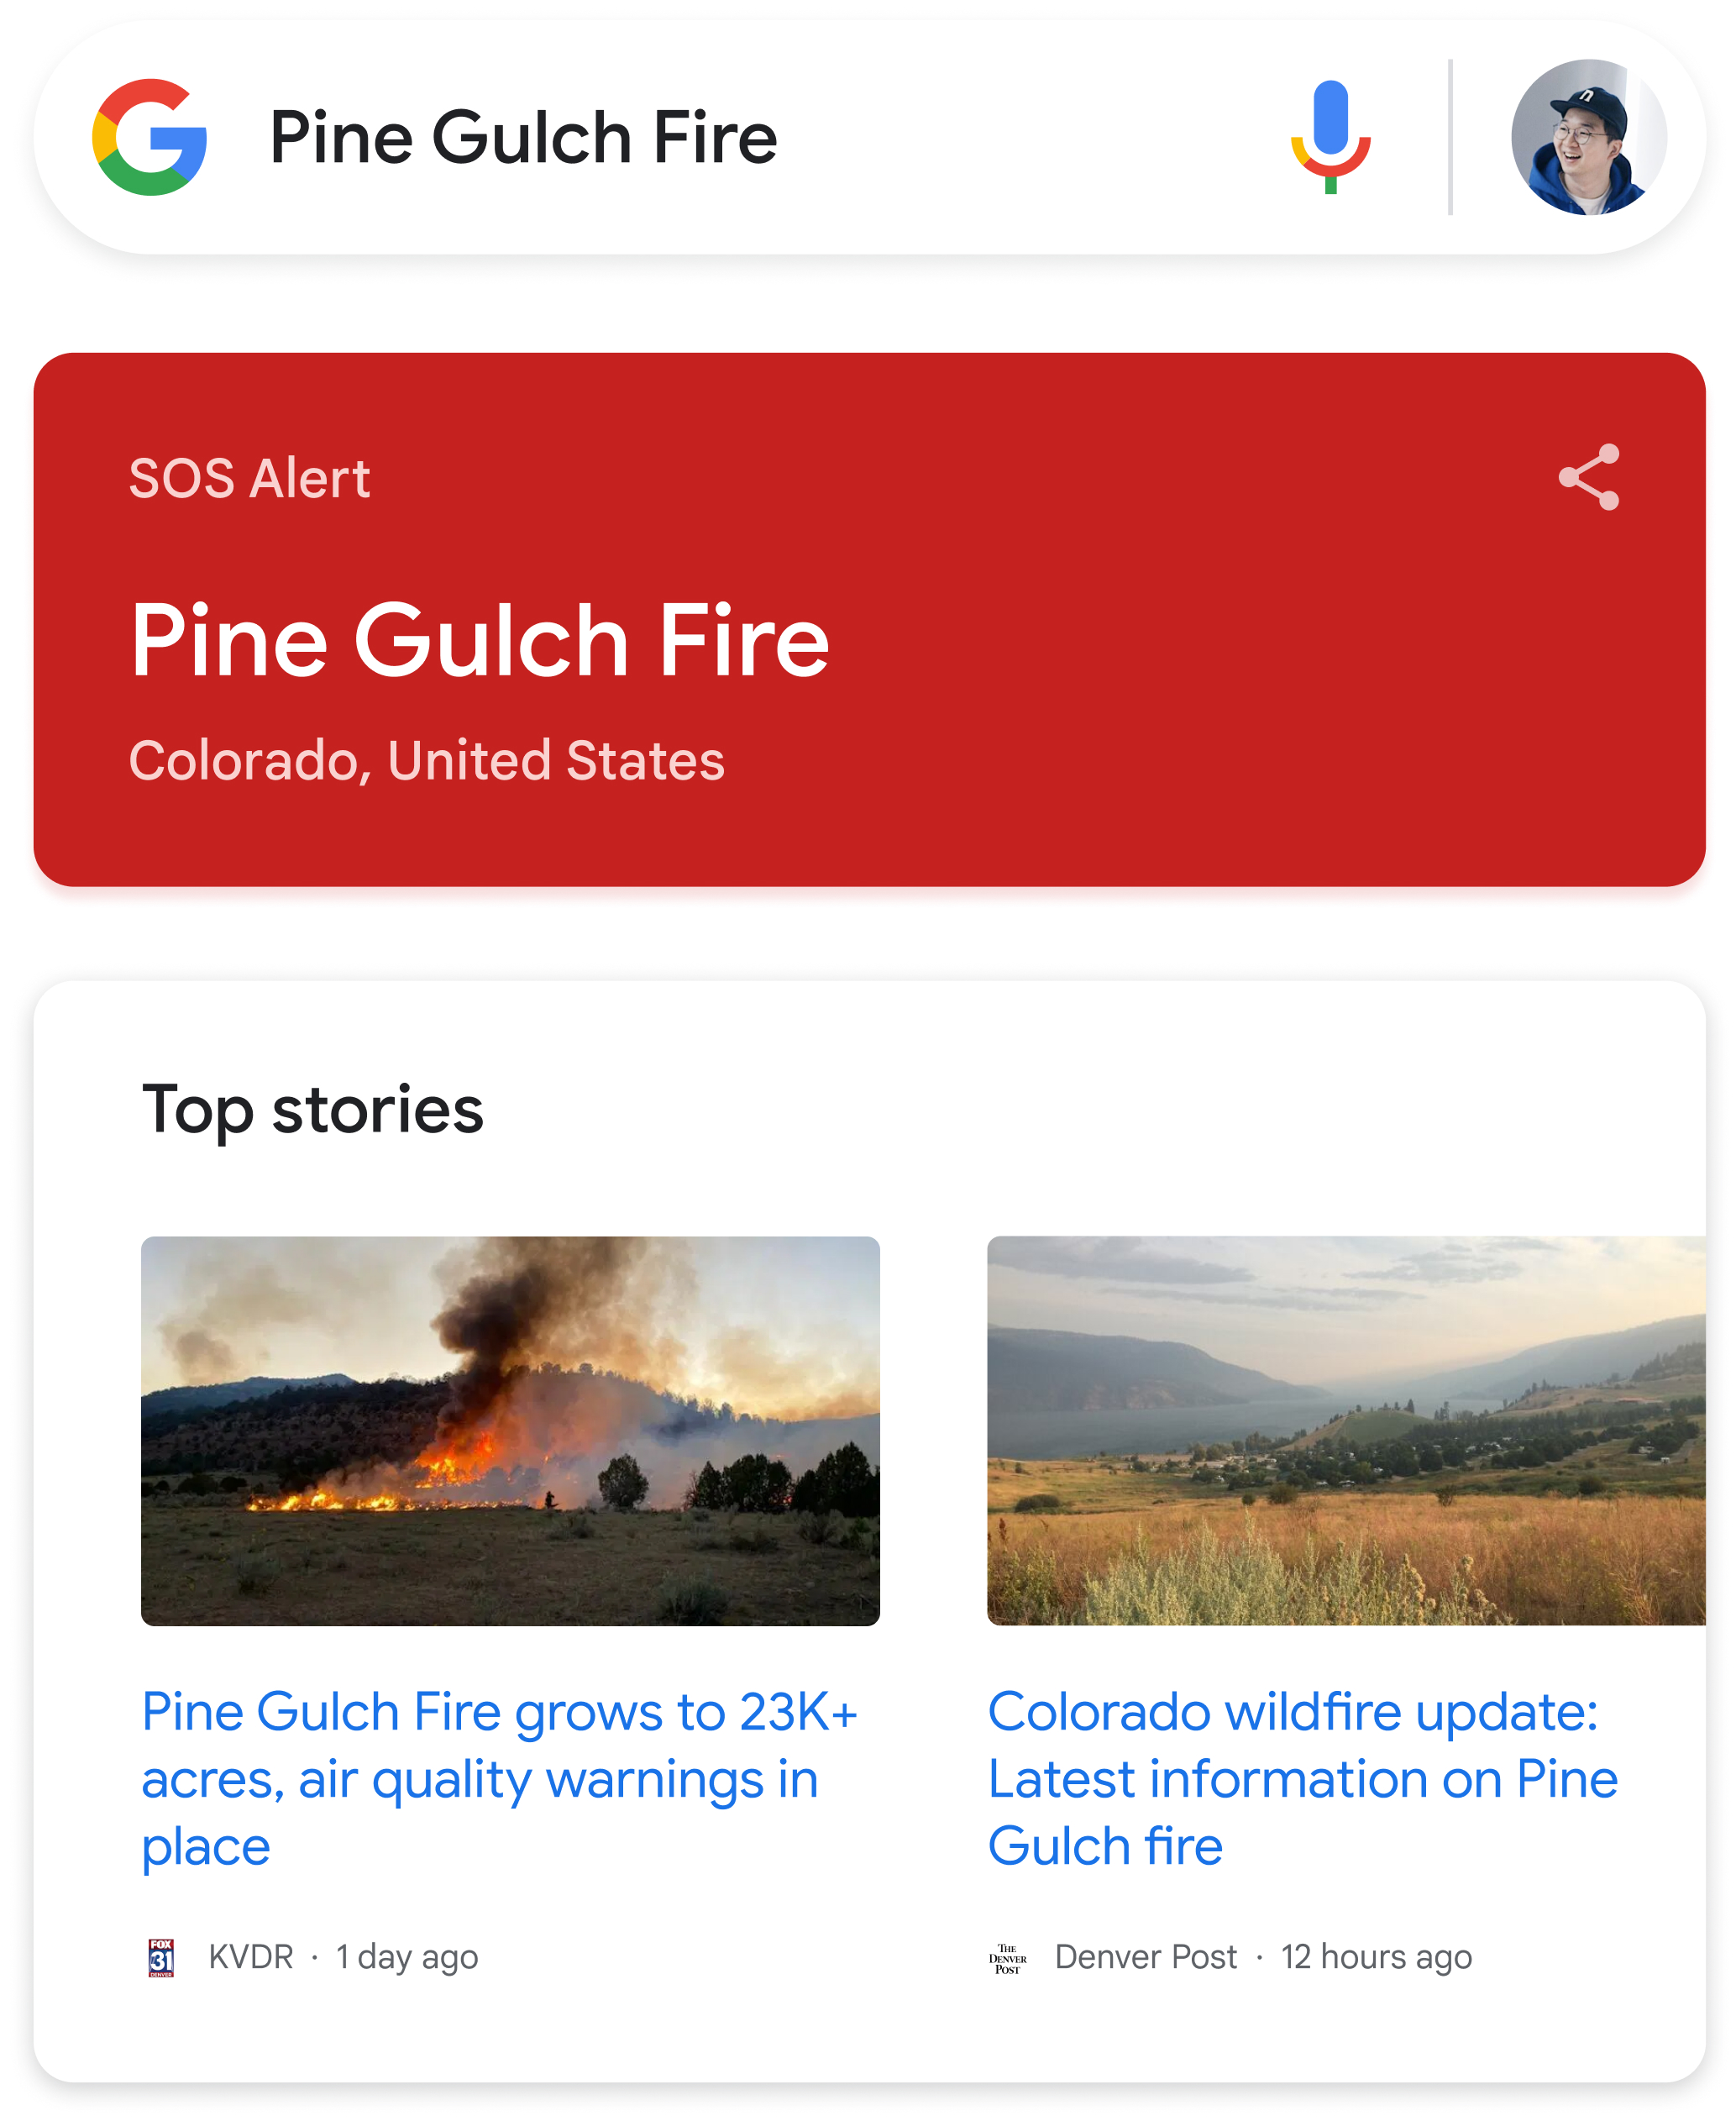 Google Search bar with query 'Pine Gulch Fire'